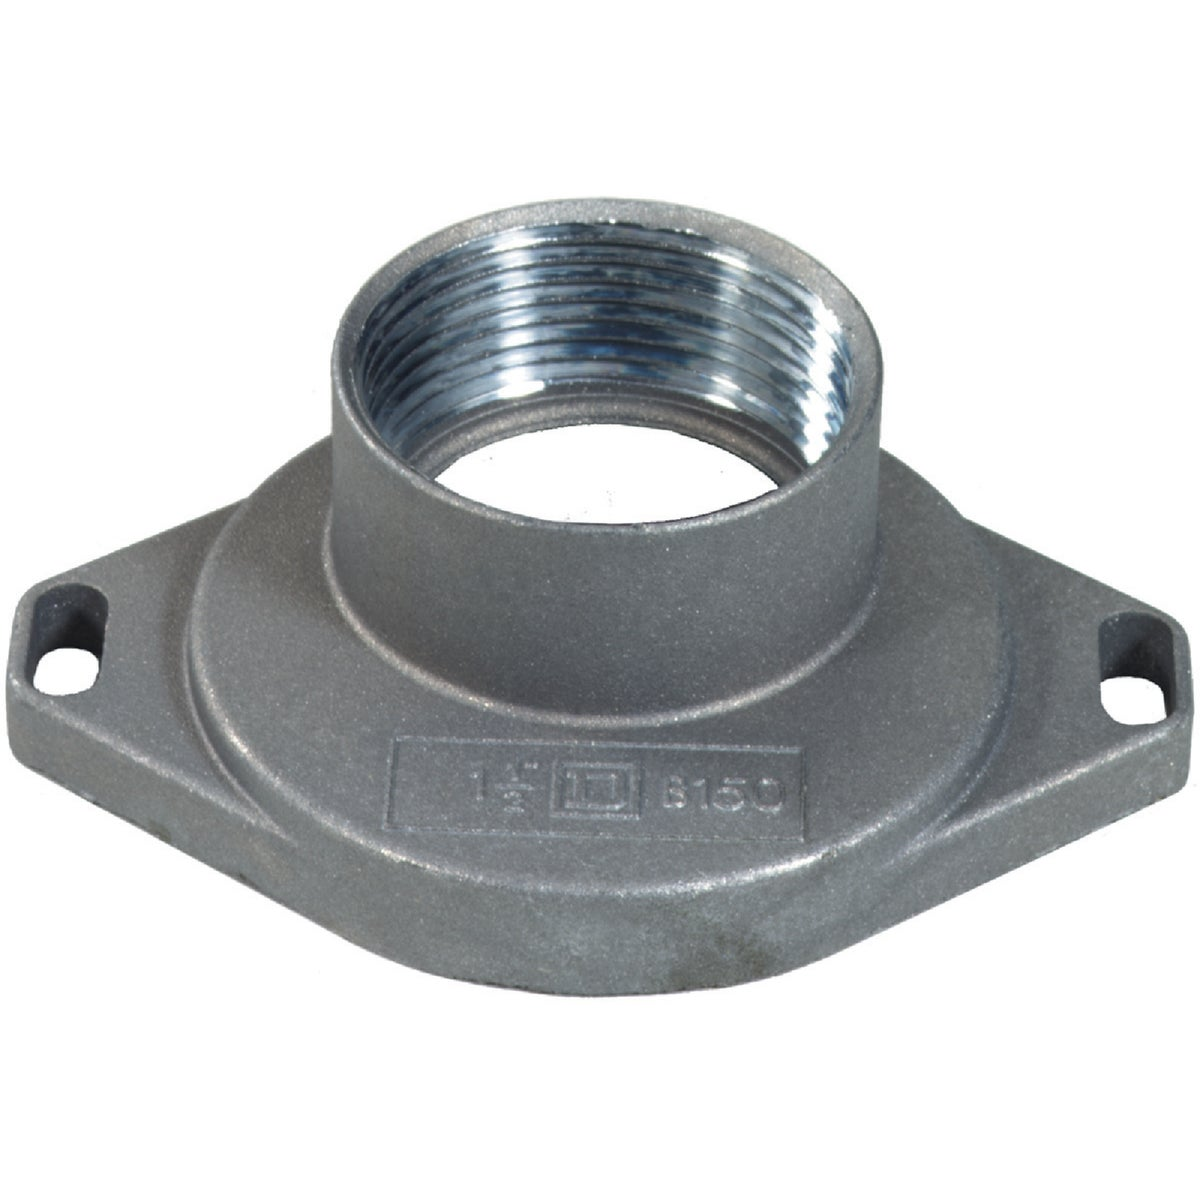 """1-1/2"""" BOLT-ON HUB - B150 by Square D Co"""